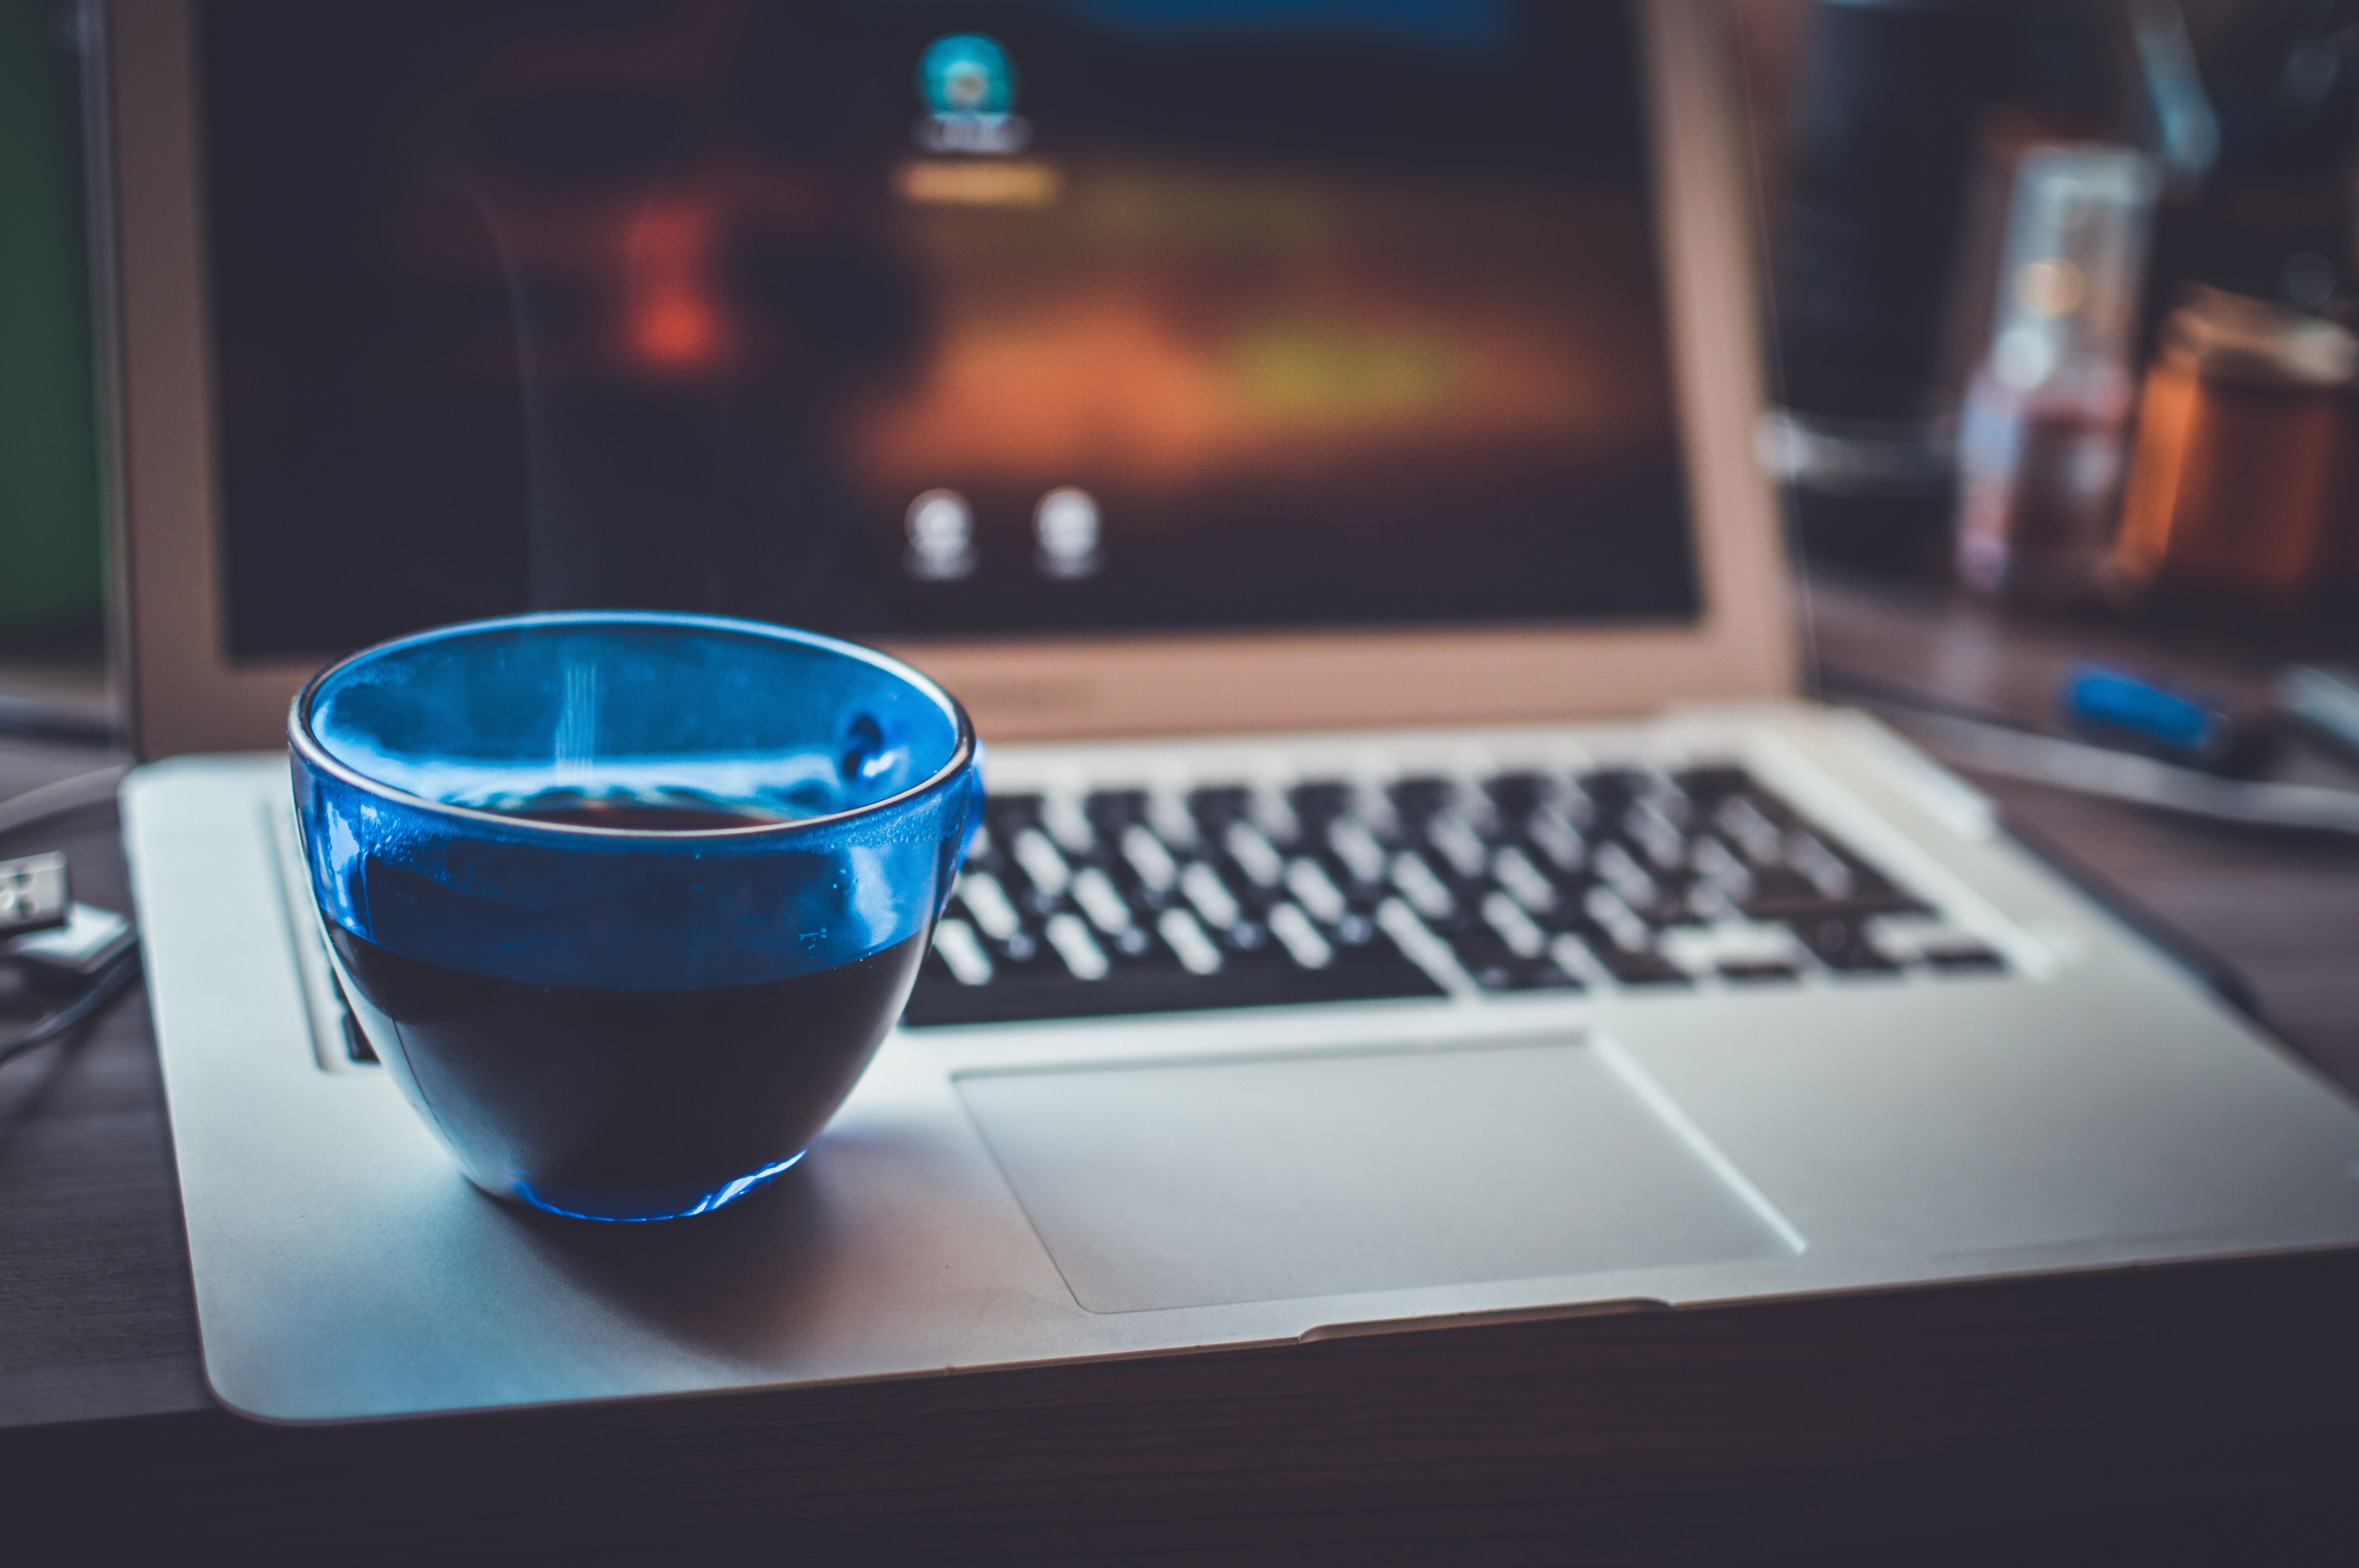 Blue Glass Cup on Silver Laptop Computer, Macbook, Screen, Shadow, Technology, HQ Photo